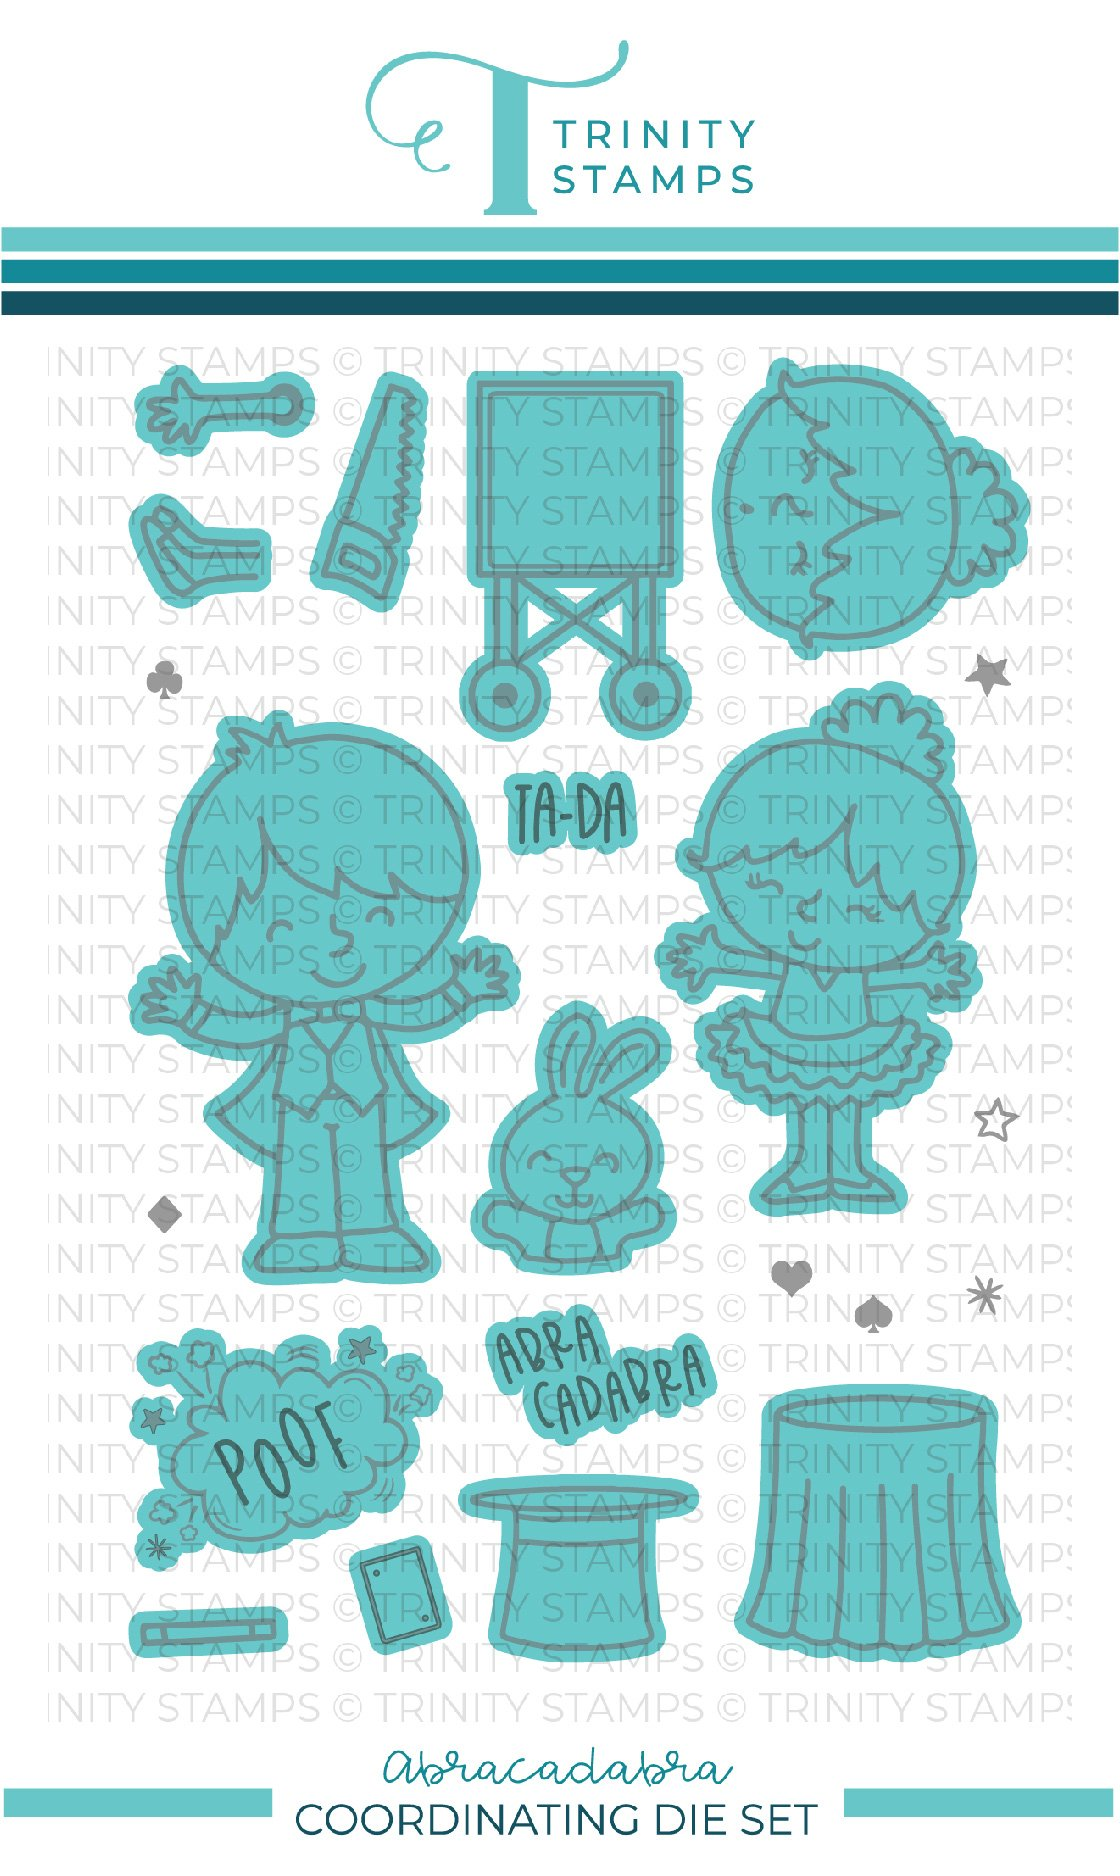 *NEW* - Trinity Stamps - Abracadabra coordinating die set